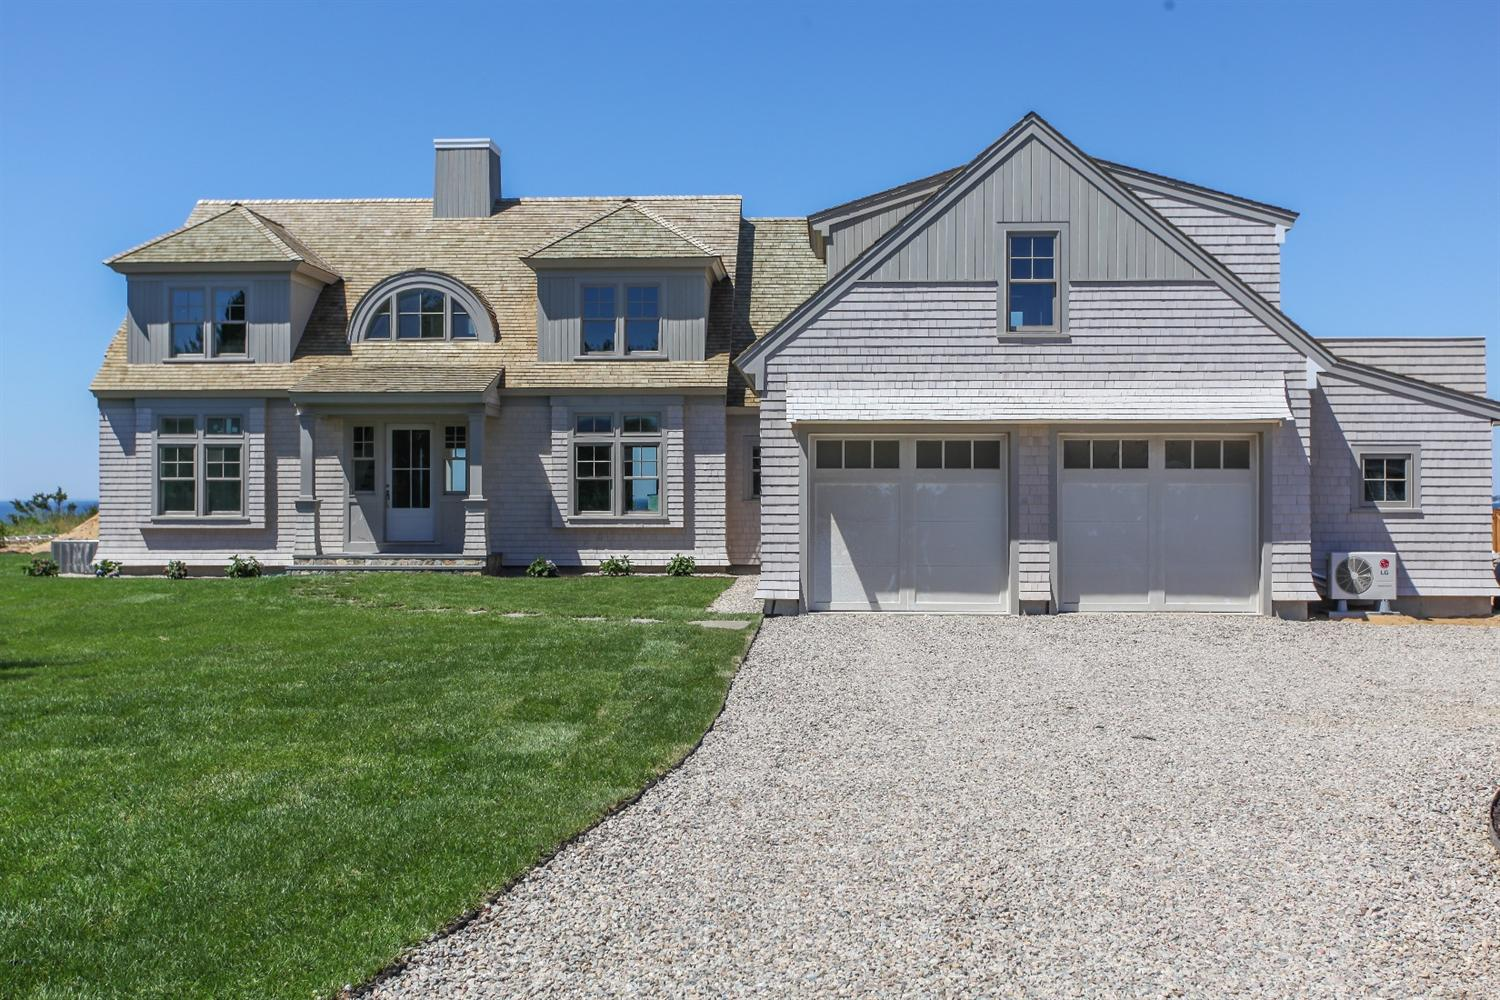 Outer cape cod waterfront properties for sale robert for Cape cod waterfront homes for sale